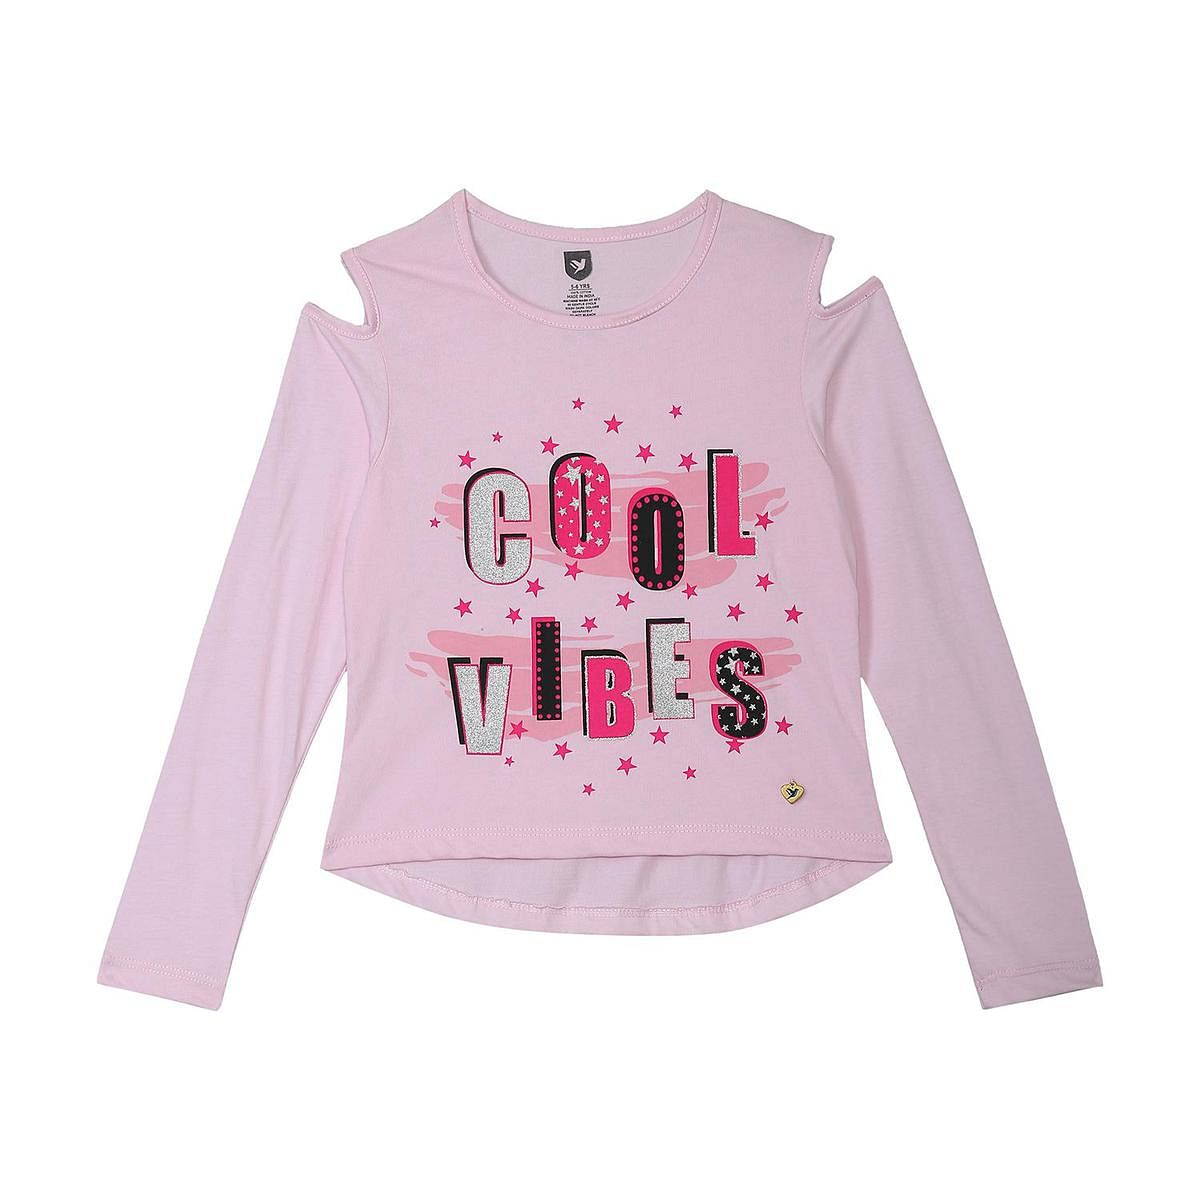 612 League - Girl's Light Pink Colored Knits Knit Graphic Top